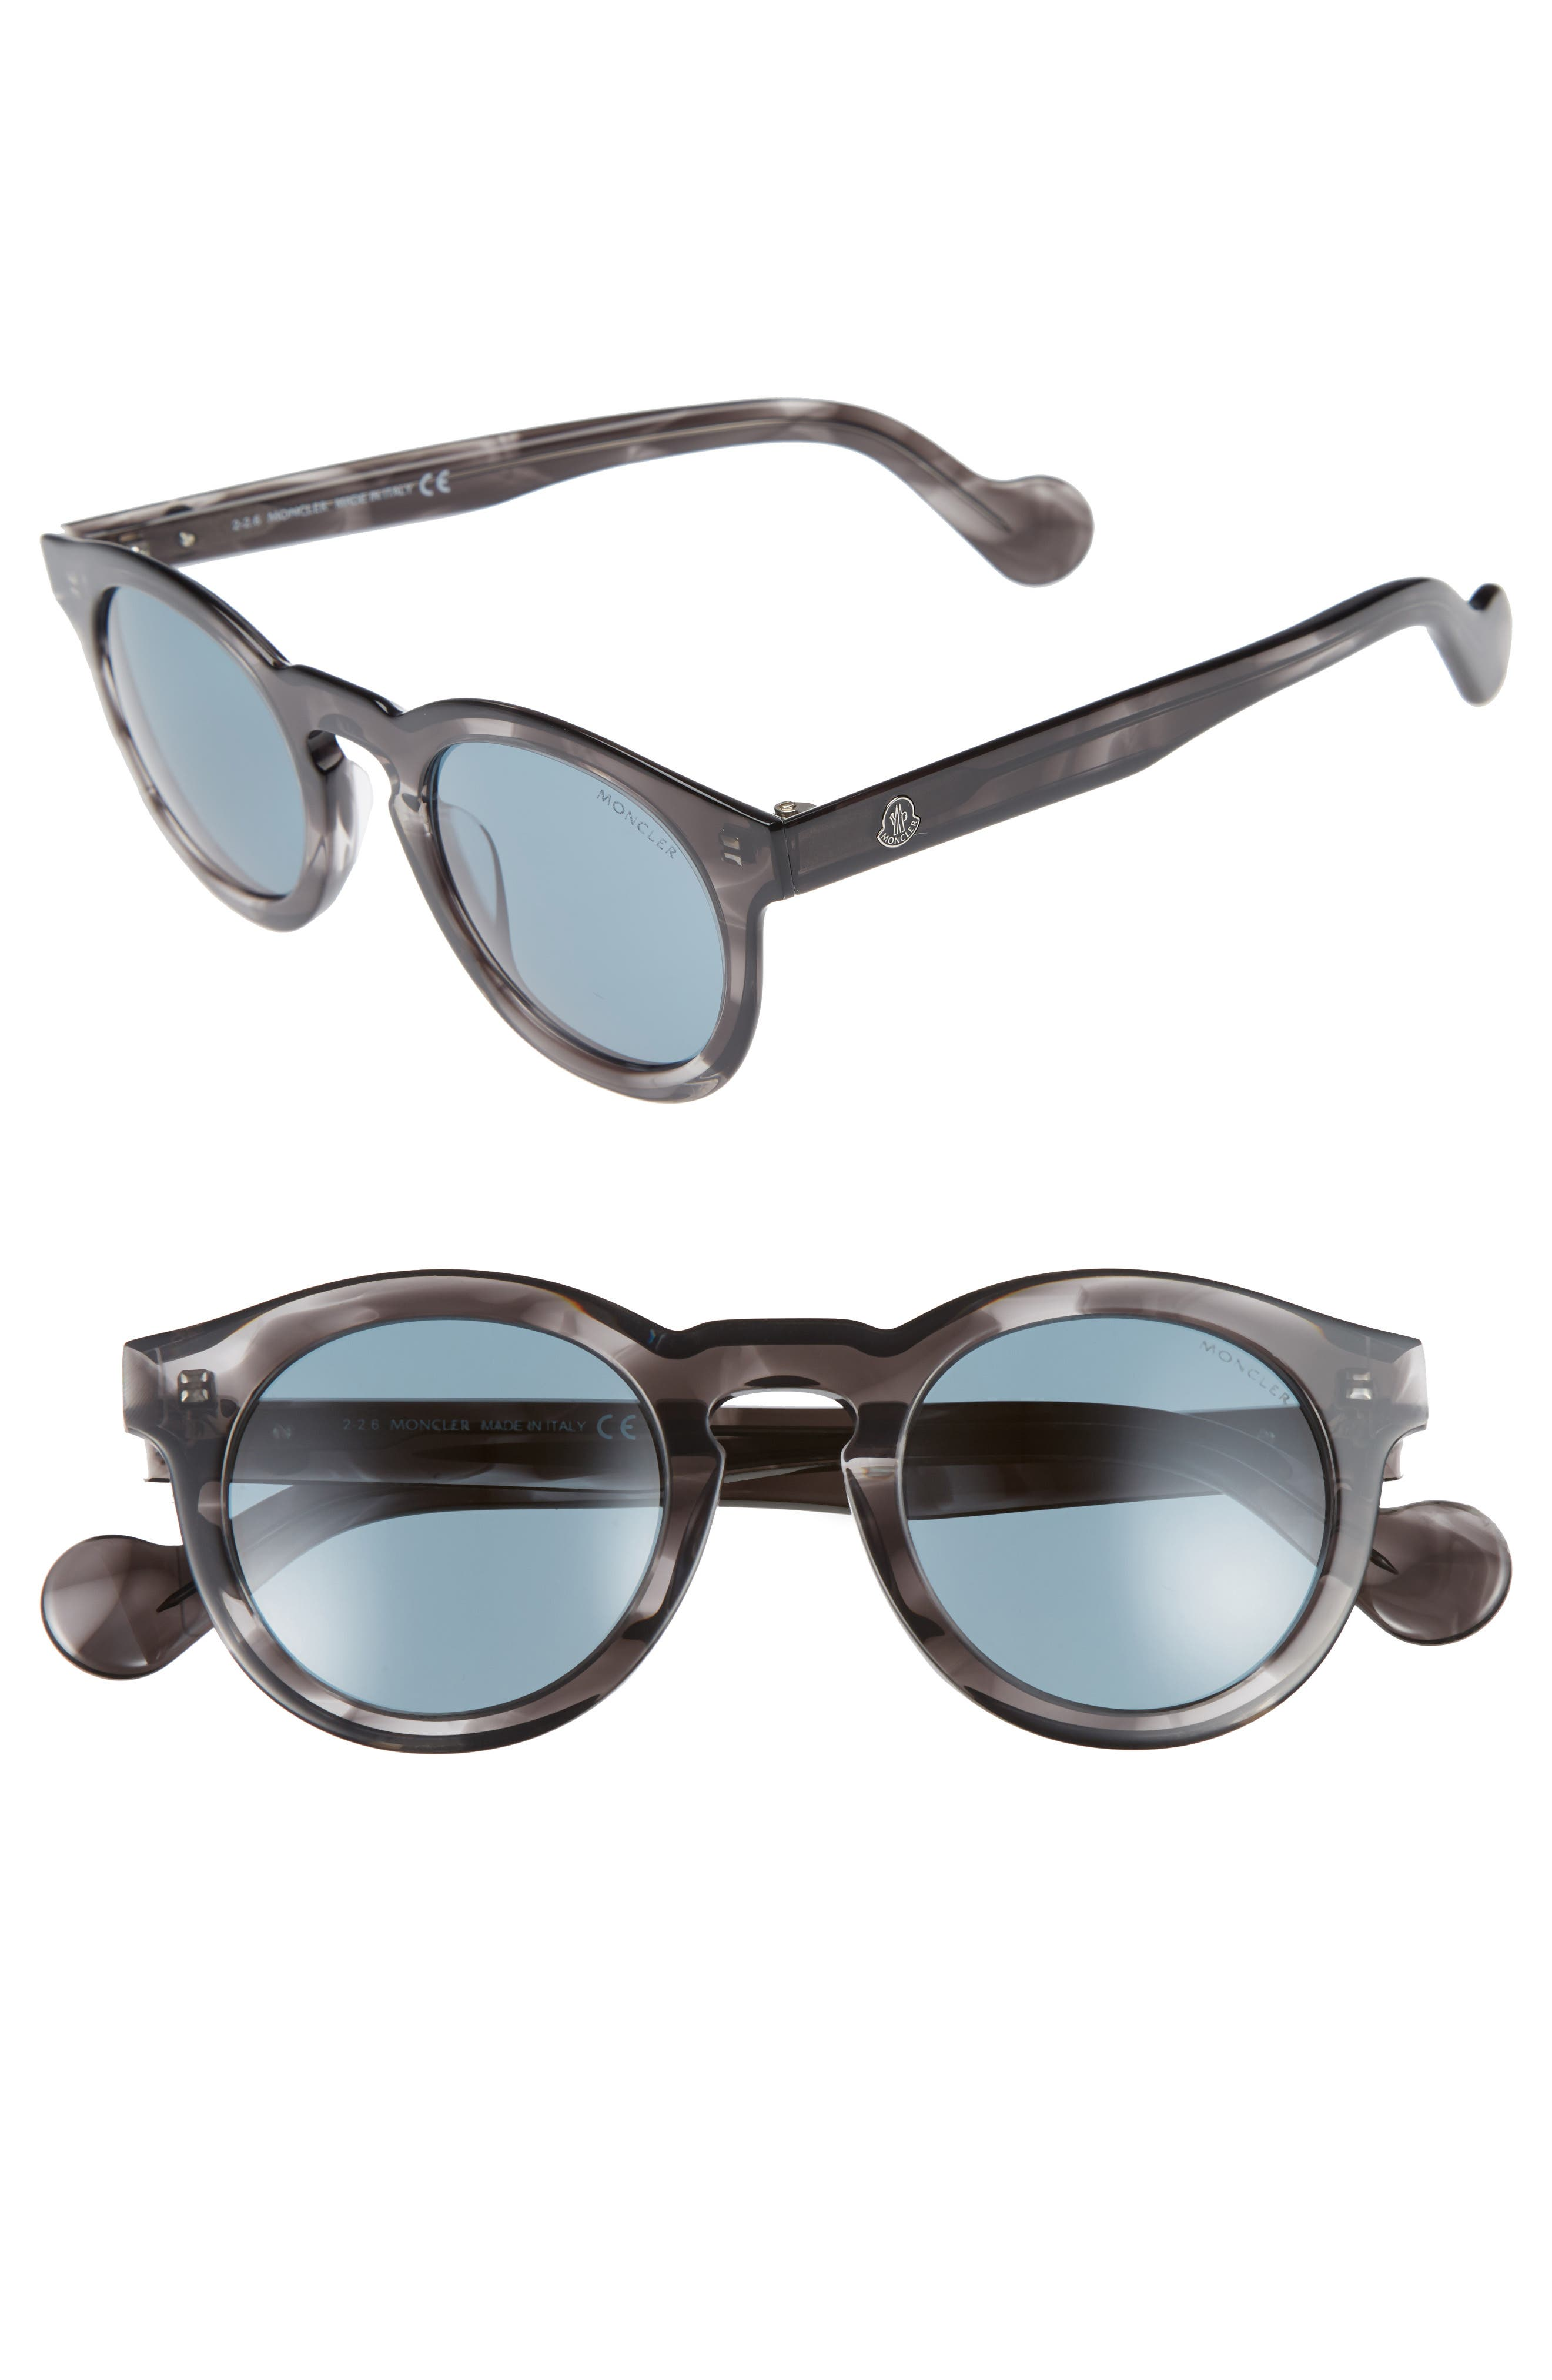 49mm Keyhole Sunglasses,                             Main thumbnail 1, color,                             Grey/ Other/ Blue